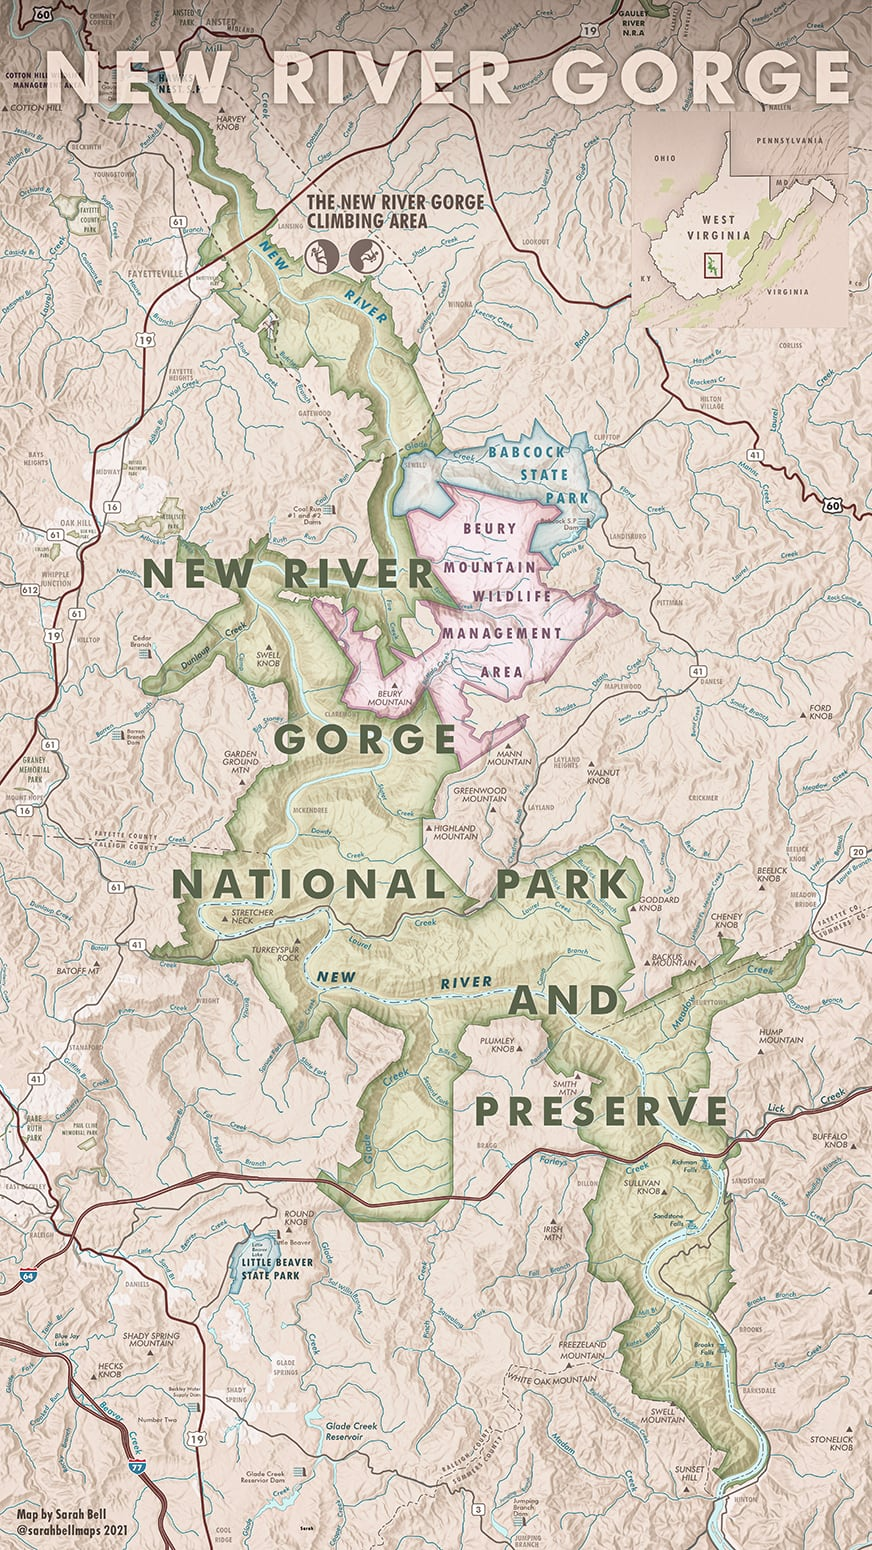 Map of New River Gorge National Park & Preserve